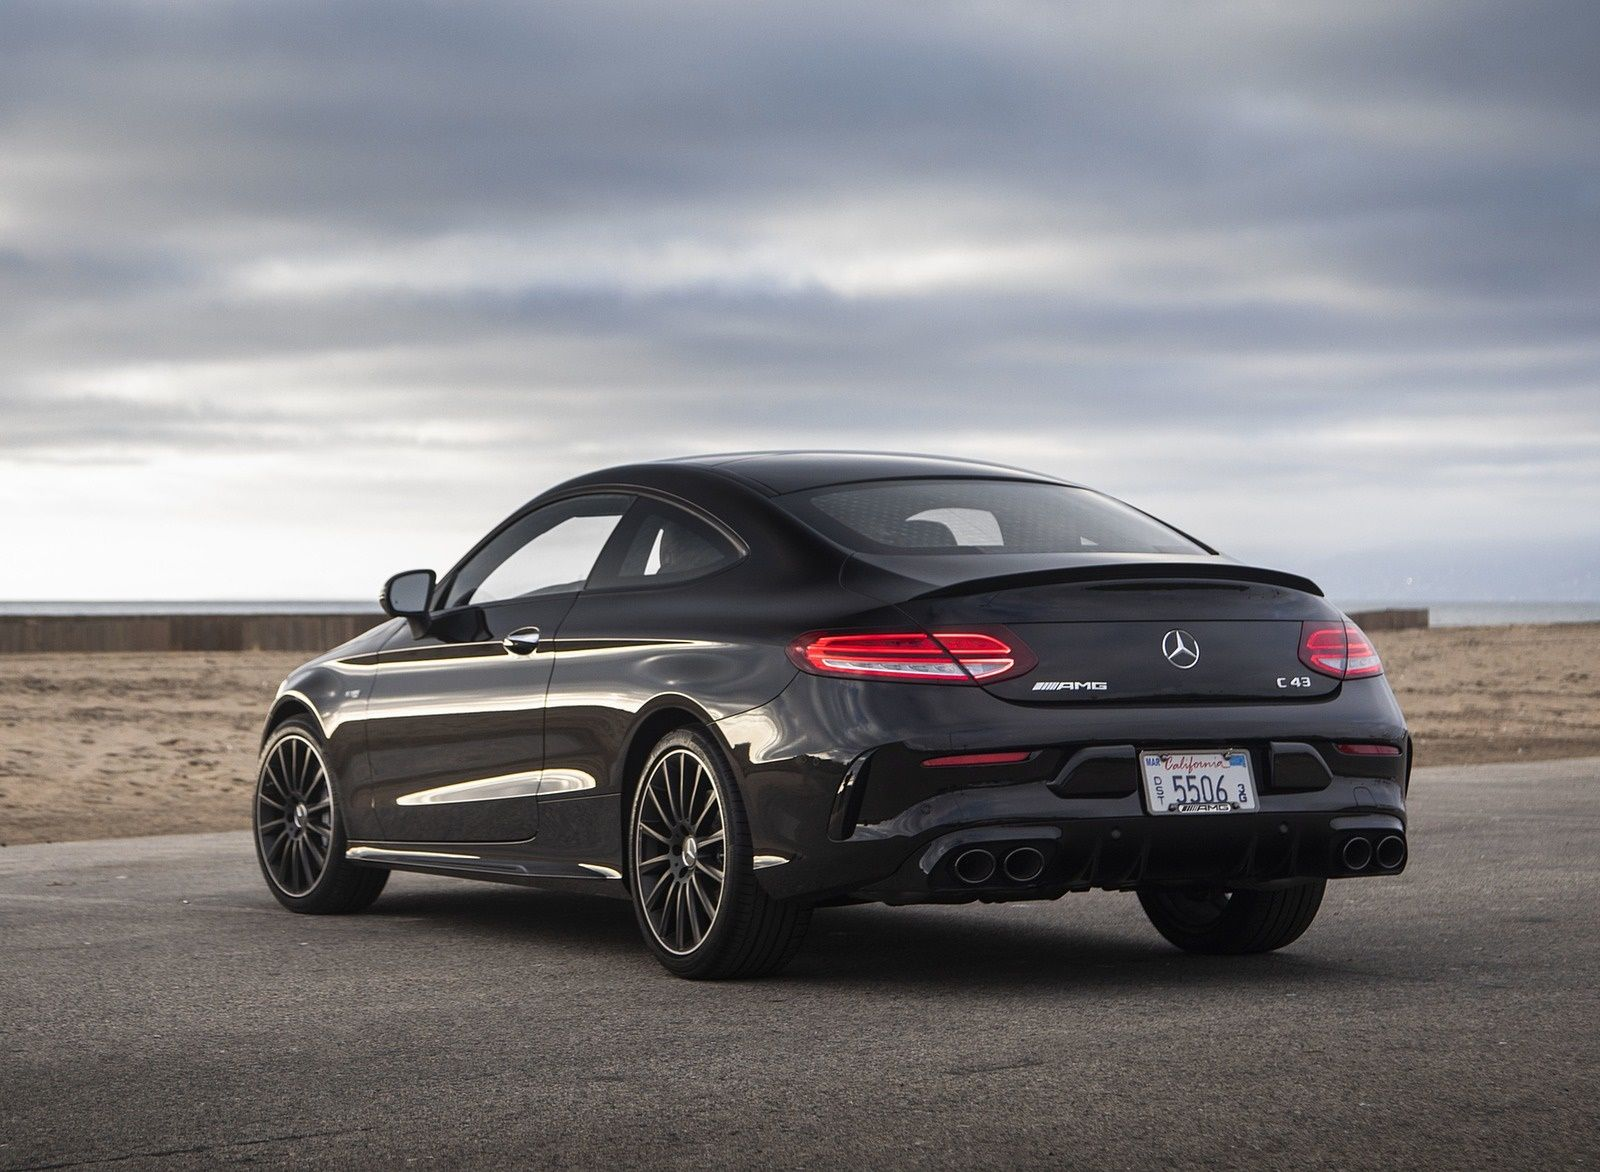 Mercedes Amg C43 Wallpapers Top Free Mercedes Amg C43 Backgrounds Wallpaperaccess